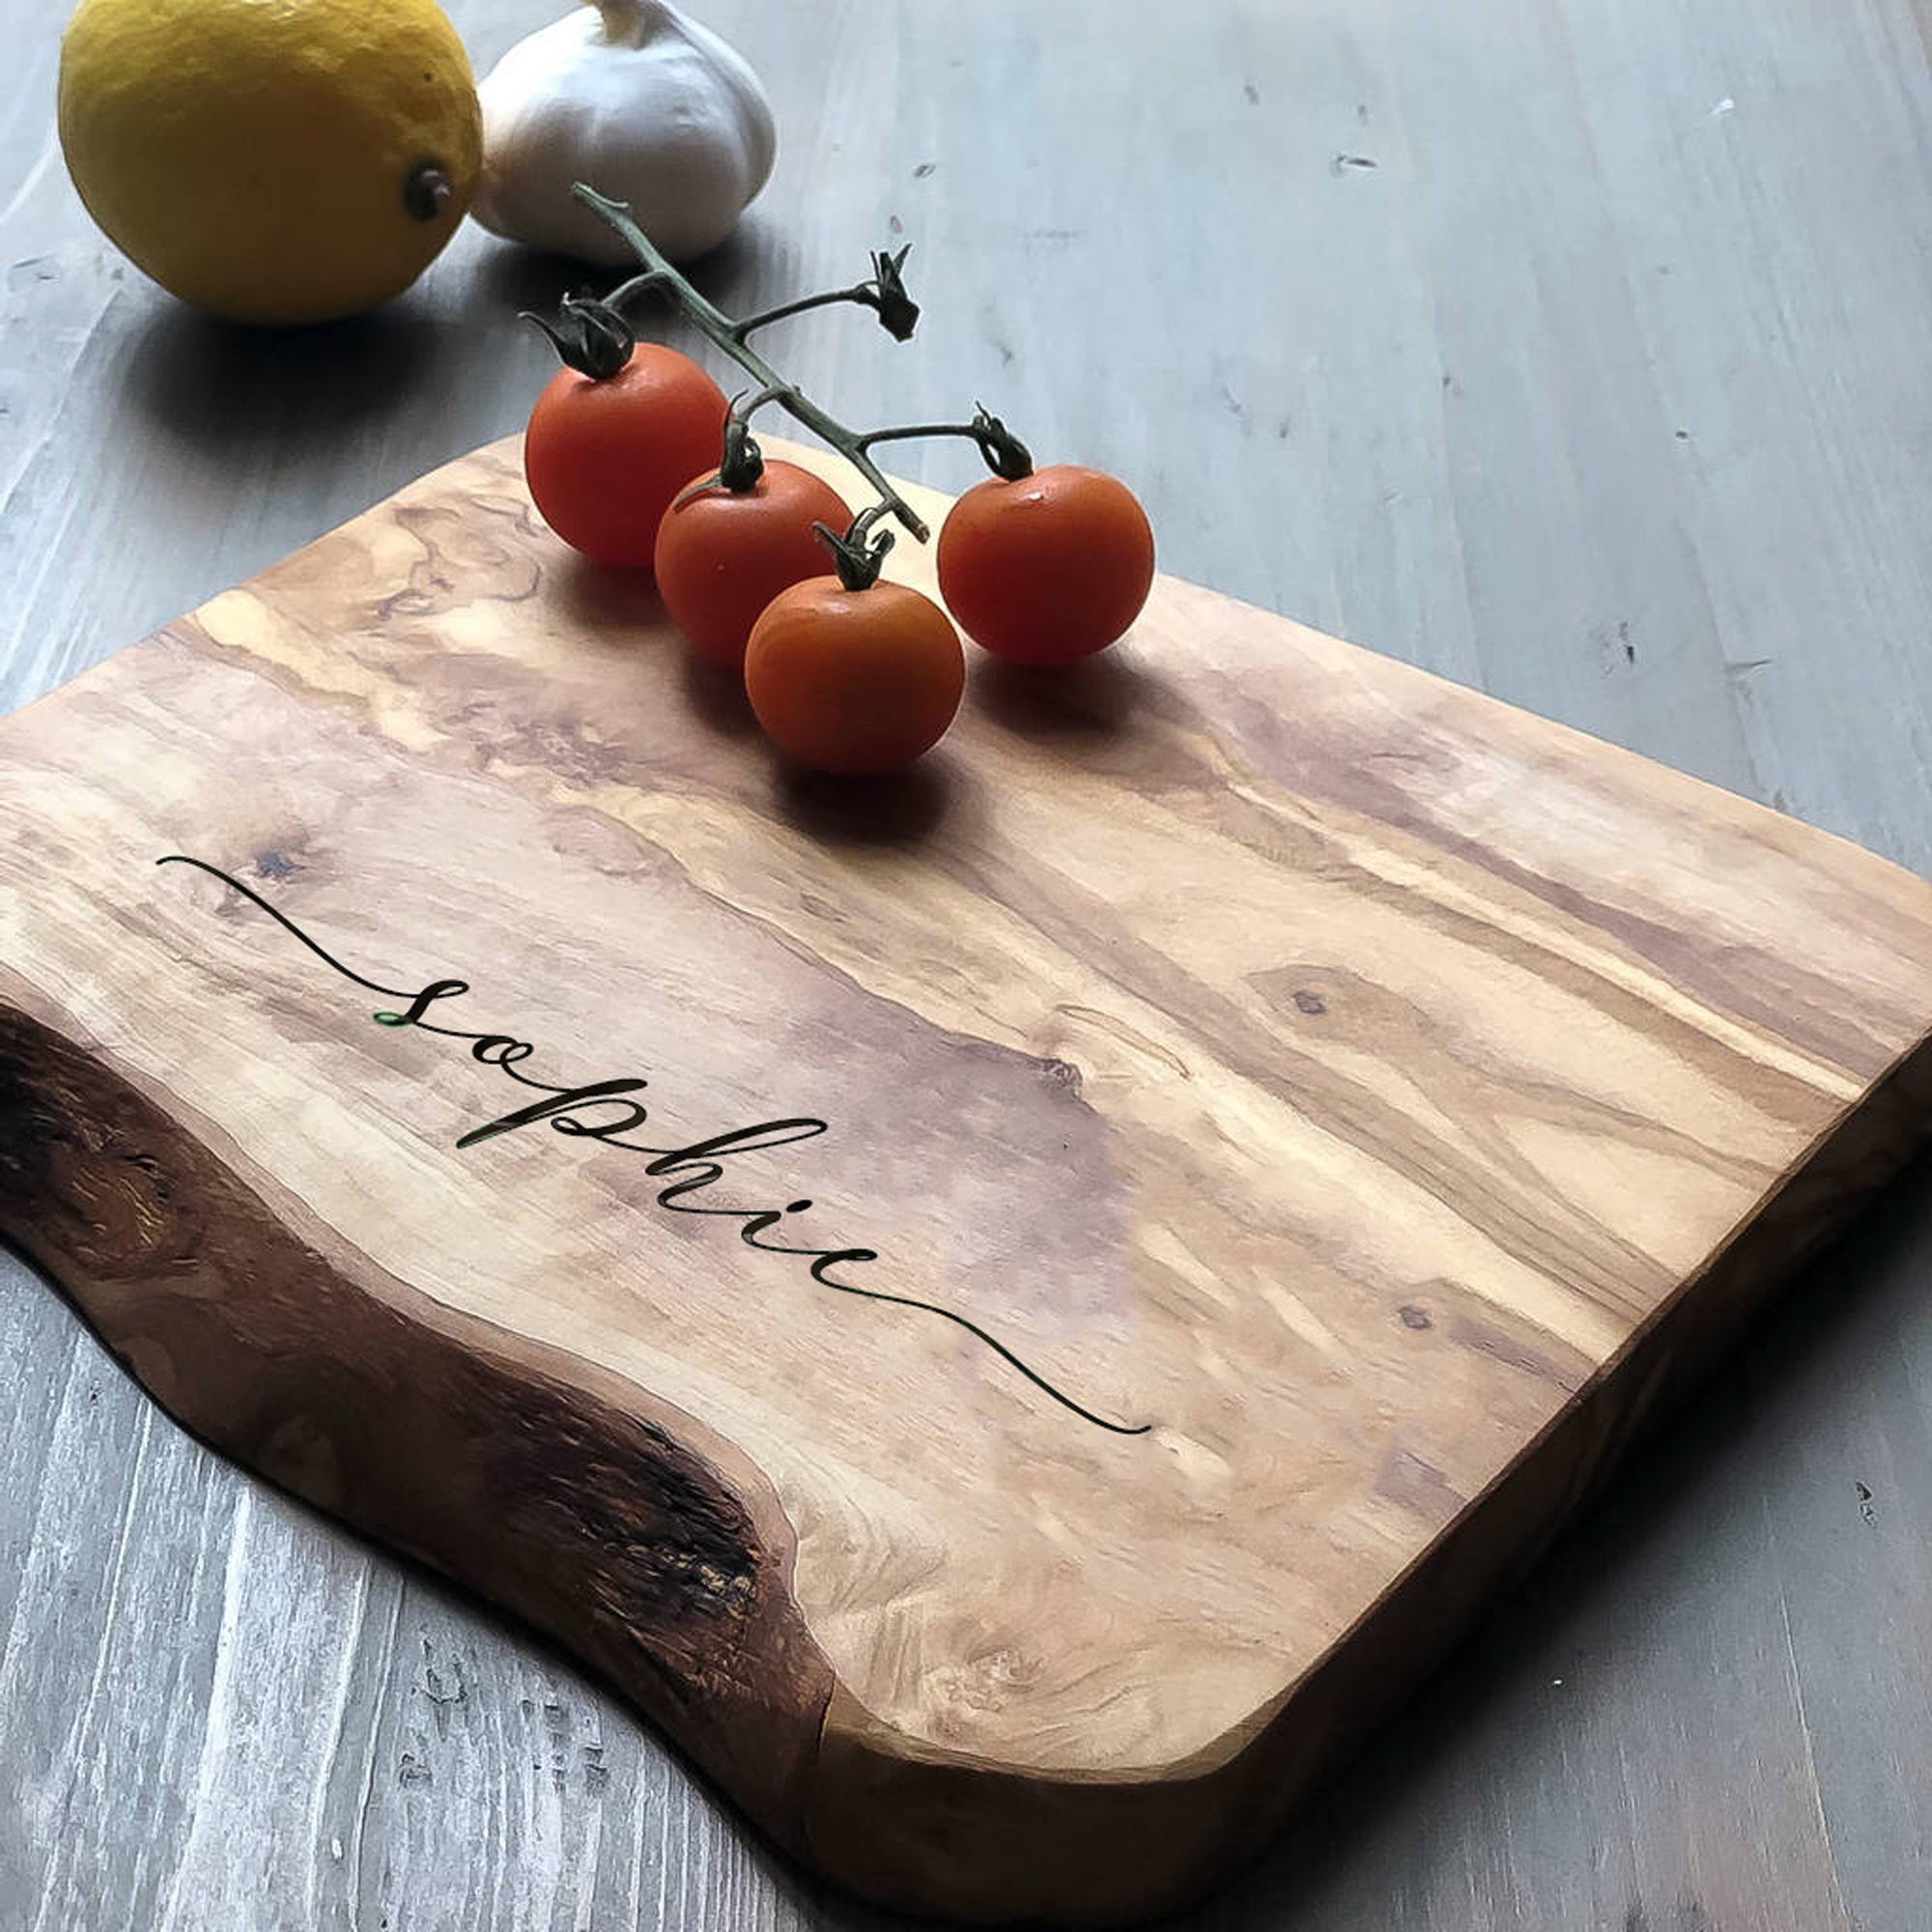 Personalised Rustic Wooden Cheese Chopping Board The Rustic Dish Ltd